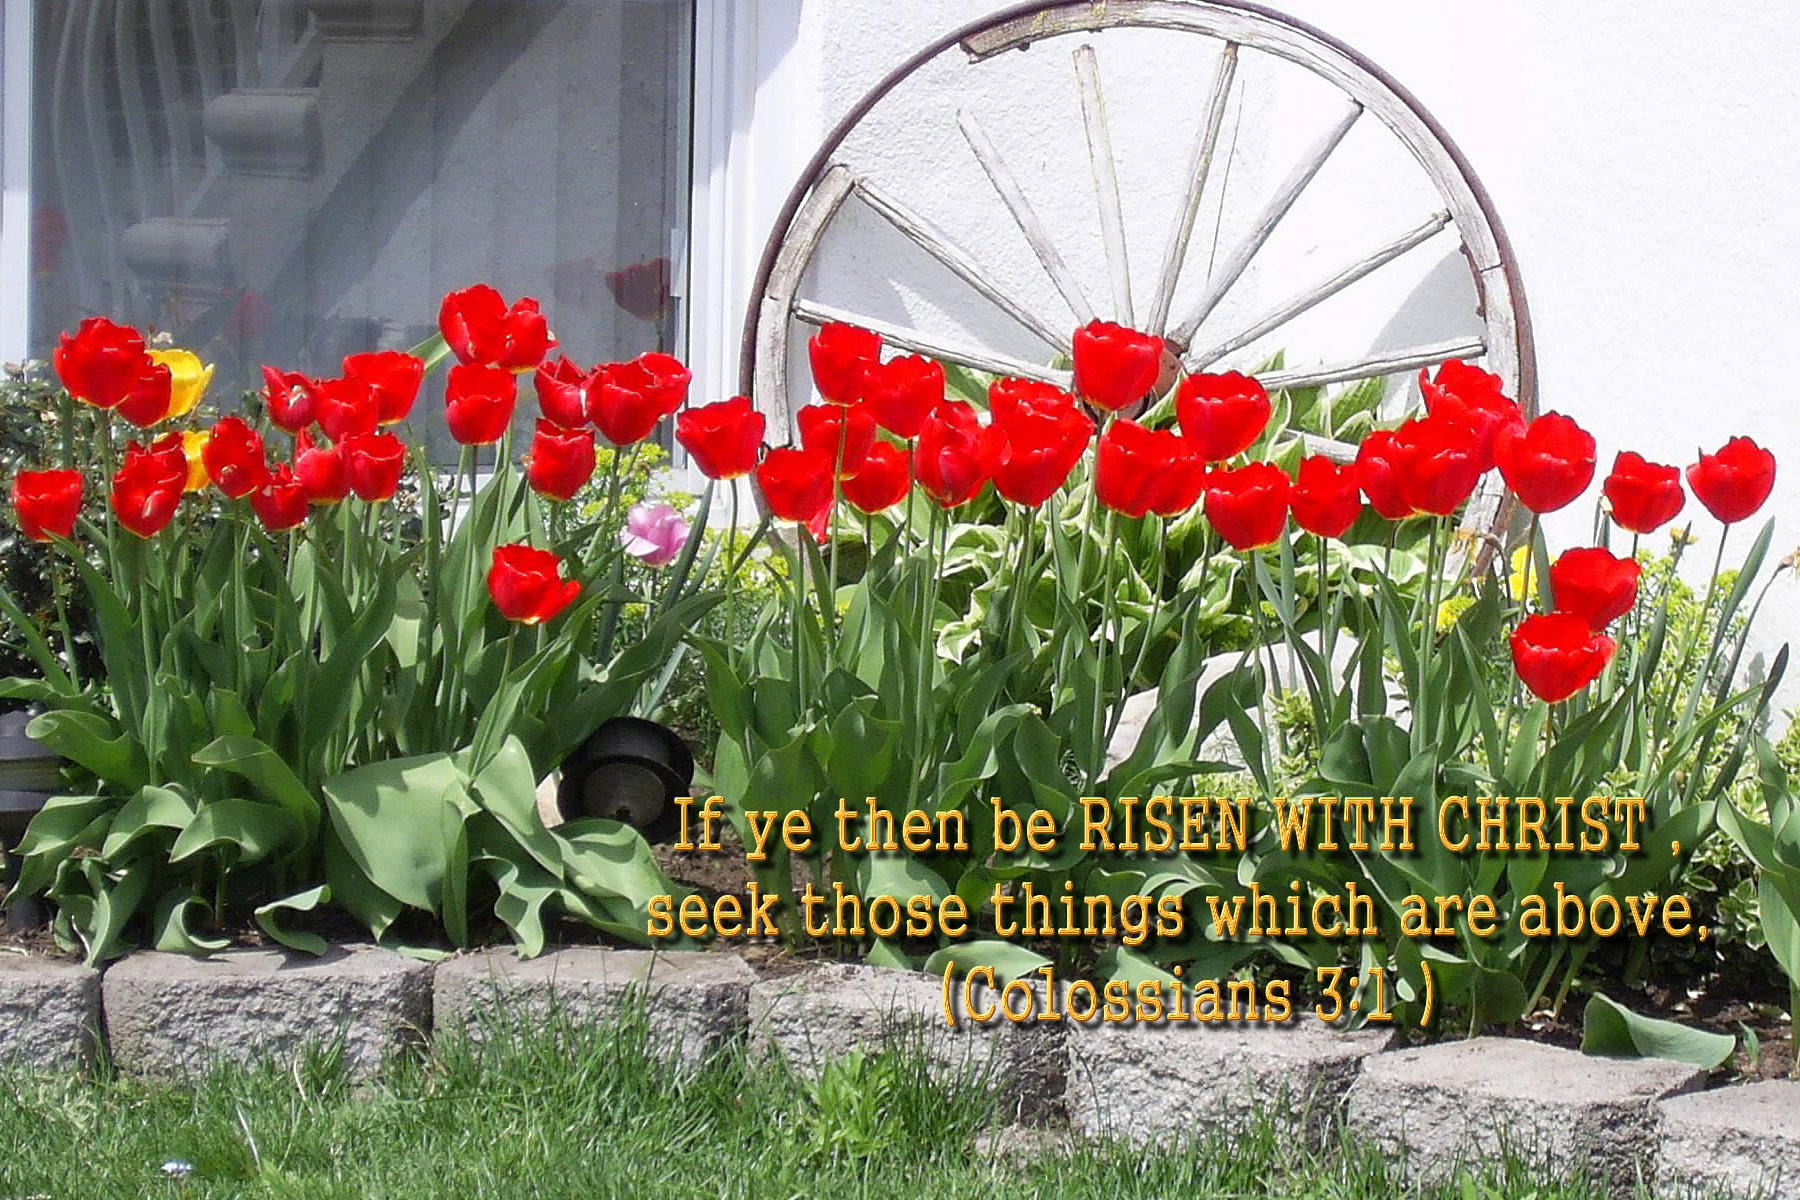 Scenery & Spring Pictures: Spring Pictures With Bible Verses